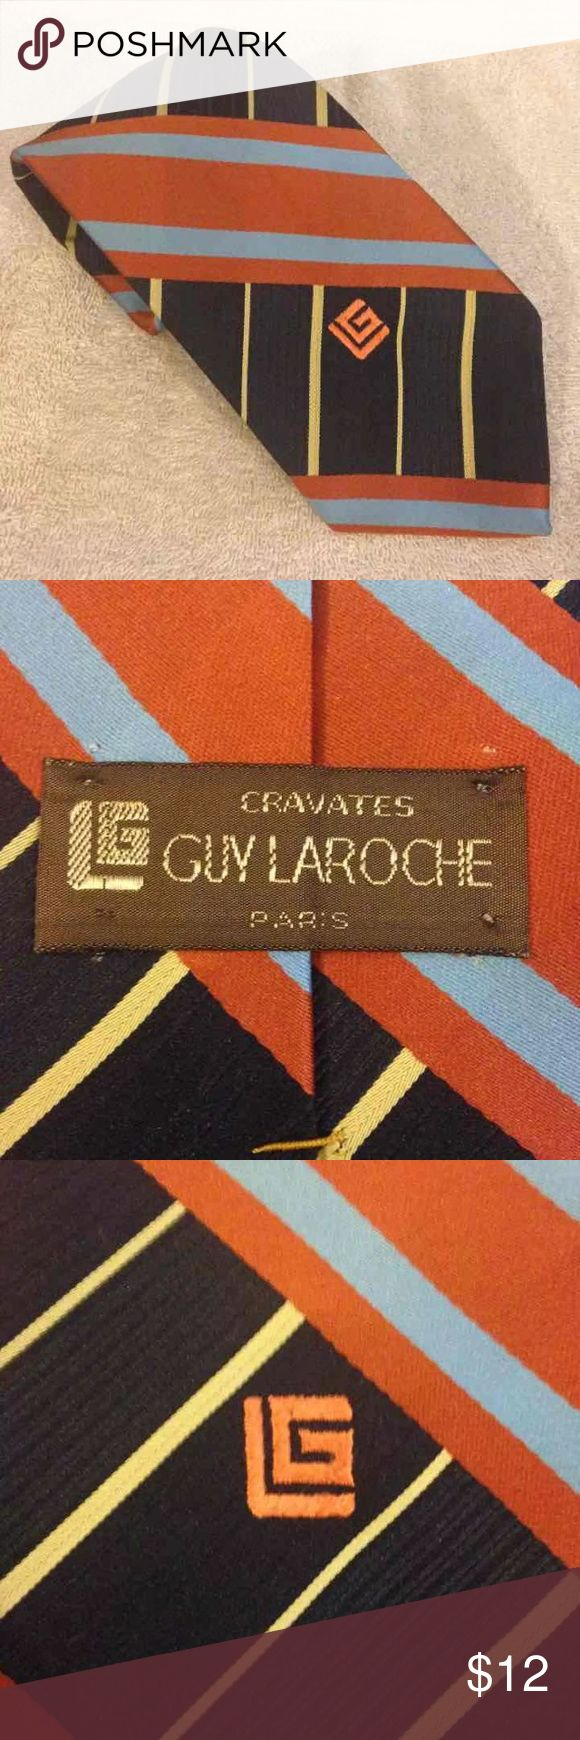 Guy Laroche Navy & Orange Plaid Tie Guy Laroche Navy, Orange, Blue and Yellow Plaid Necktie! Like new! Please make reasonable offers and bundle! Guy Laroche Accessories Ties